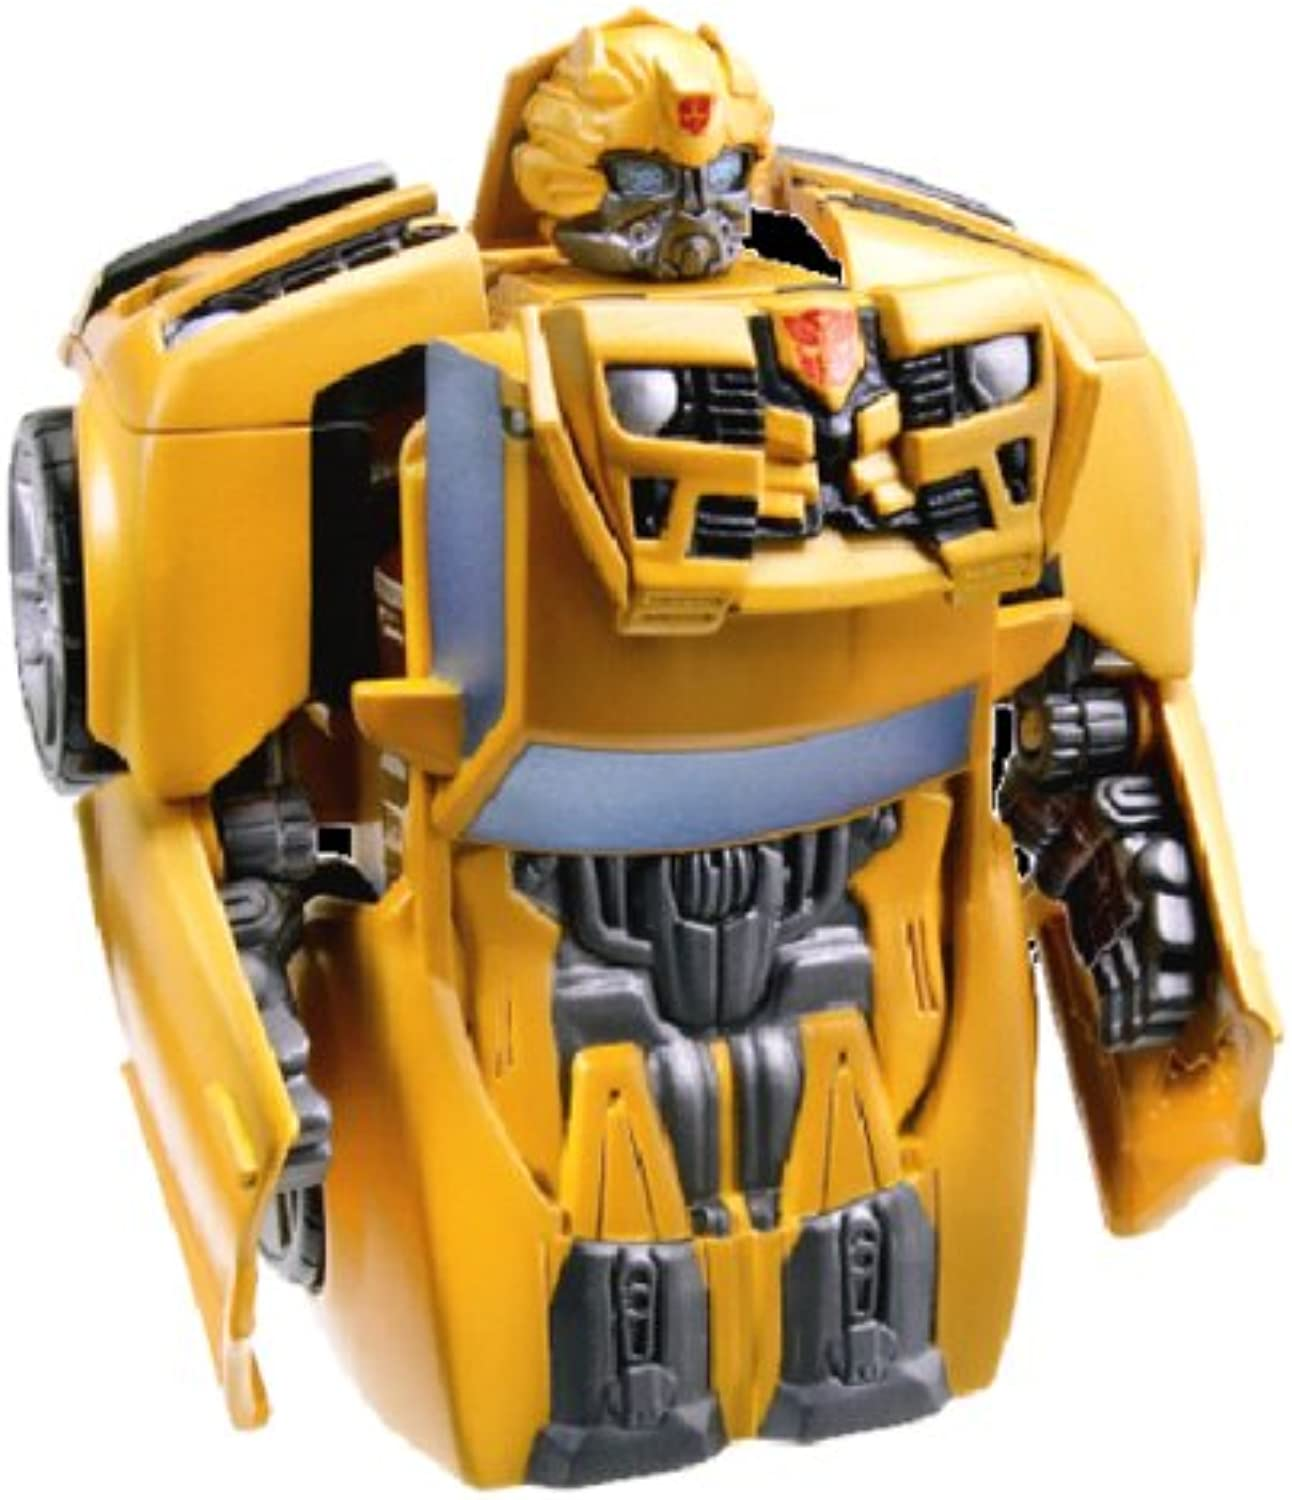 te hará satisfecho Transformers Revenge of the Fallen Transformers Movie Gravitybots GB-02 GB-02 GB-02 Bumblebee (japan import)  tienda en linea